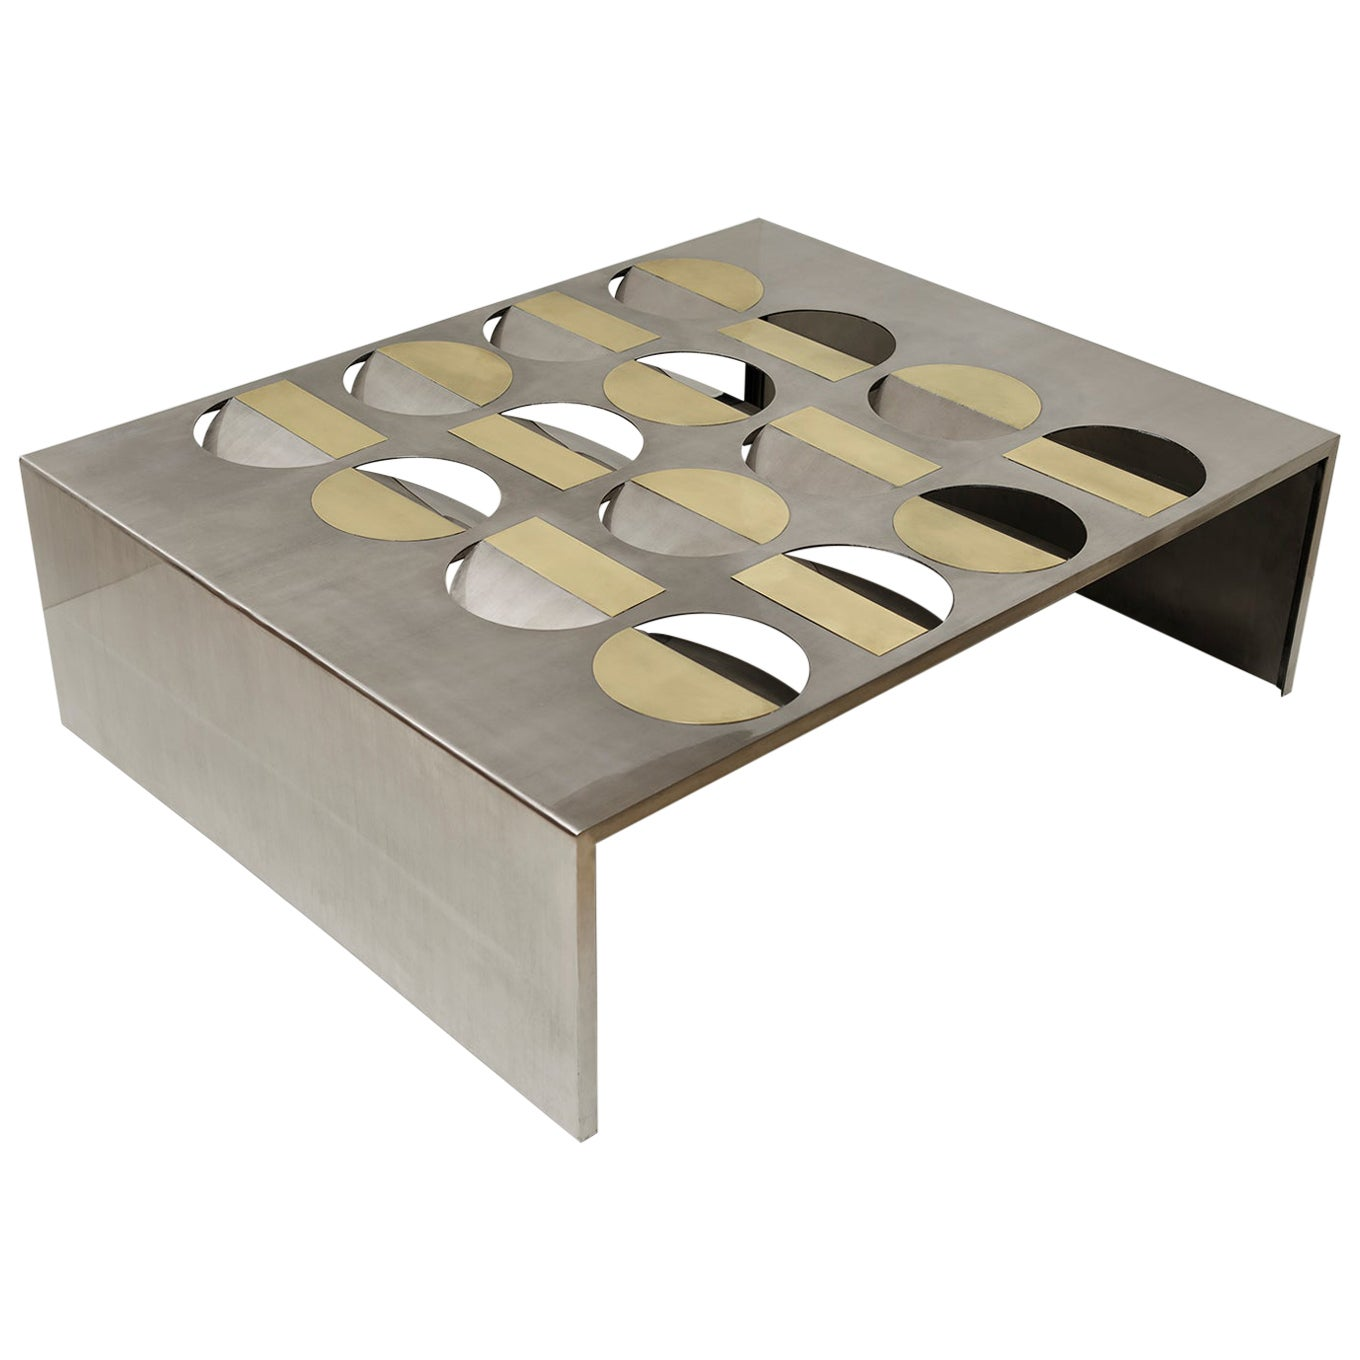 Stainless Steel Moonland Coffee Table by Ana Volante Studio